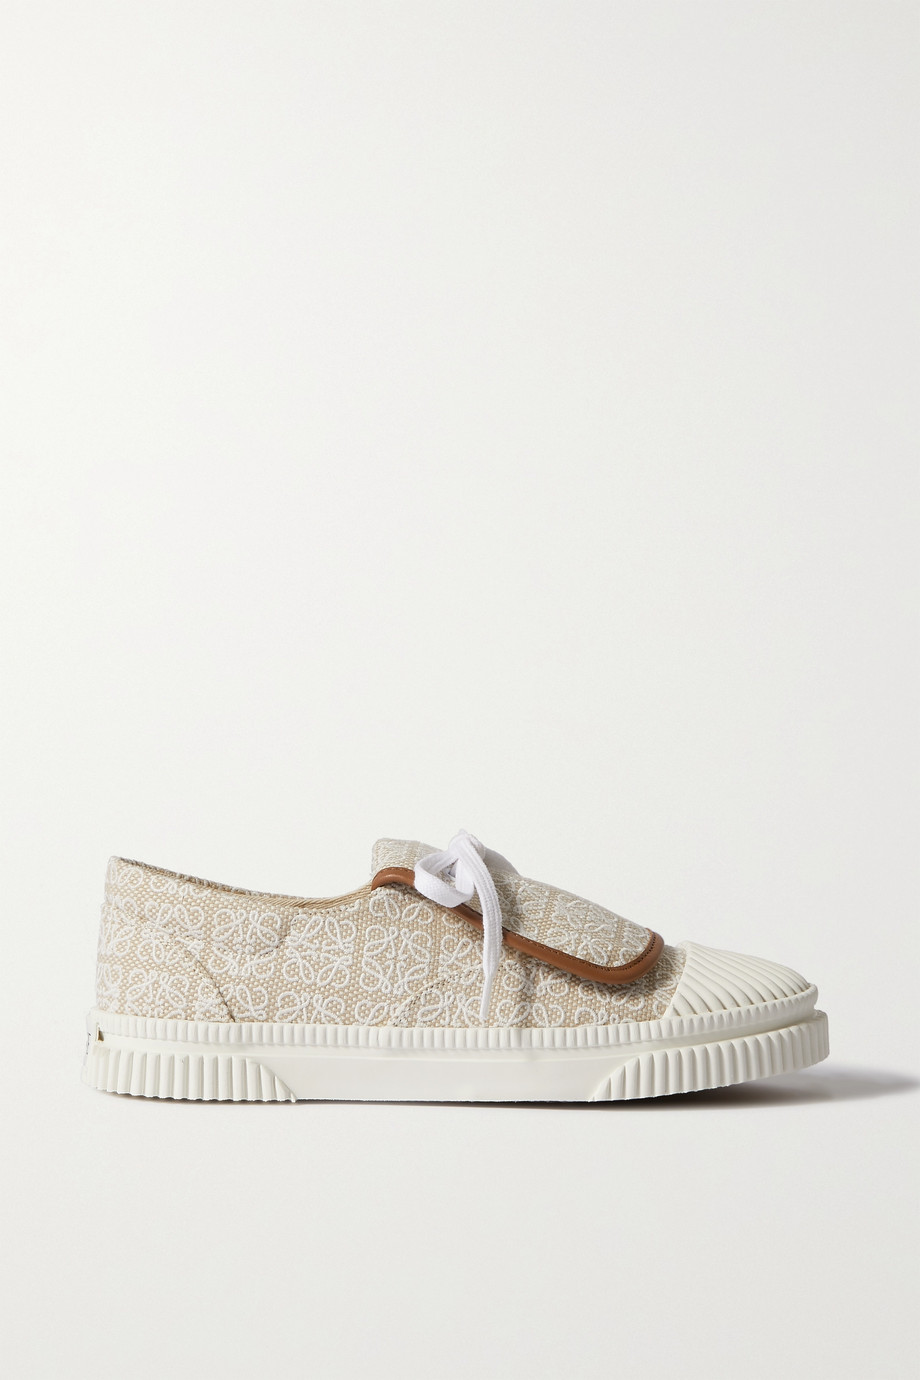 Loewe Anagram leather-trimmed canvas-jacquard sneakers